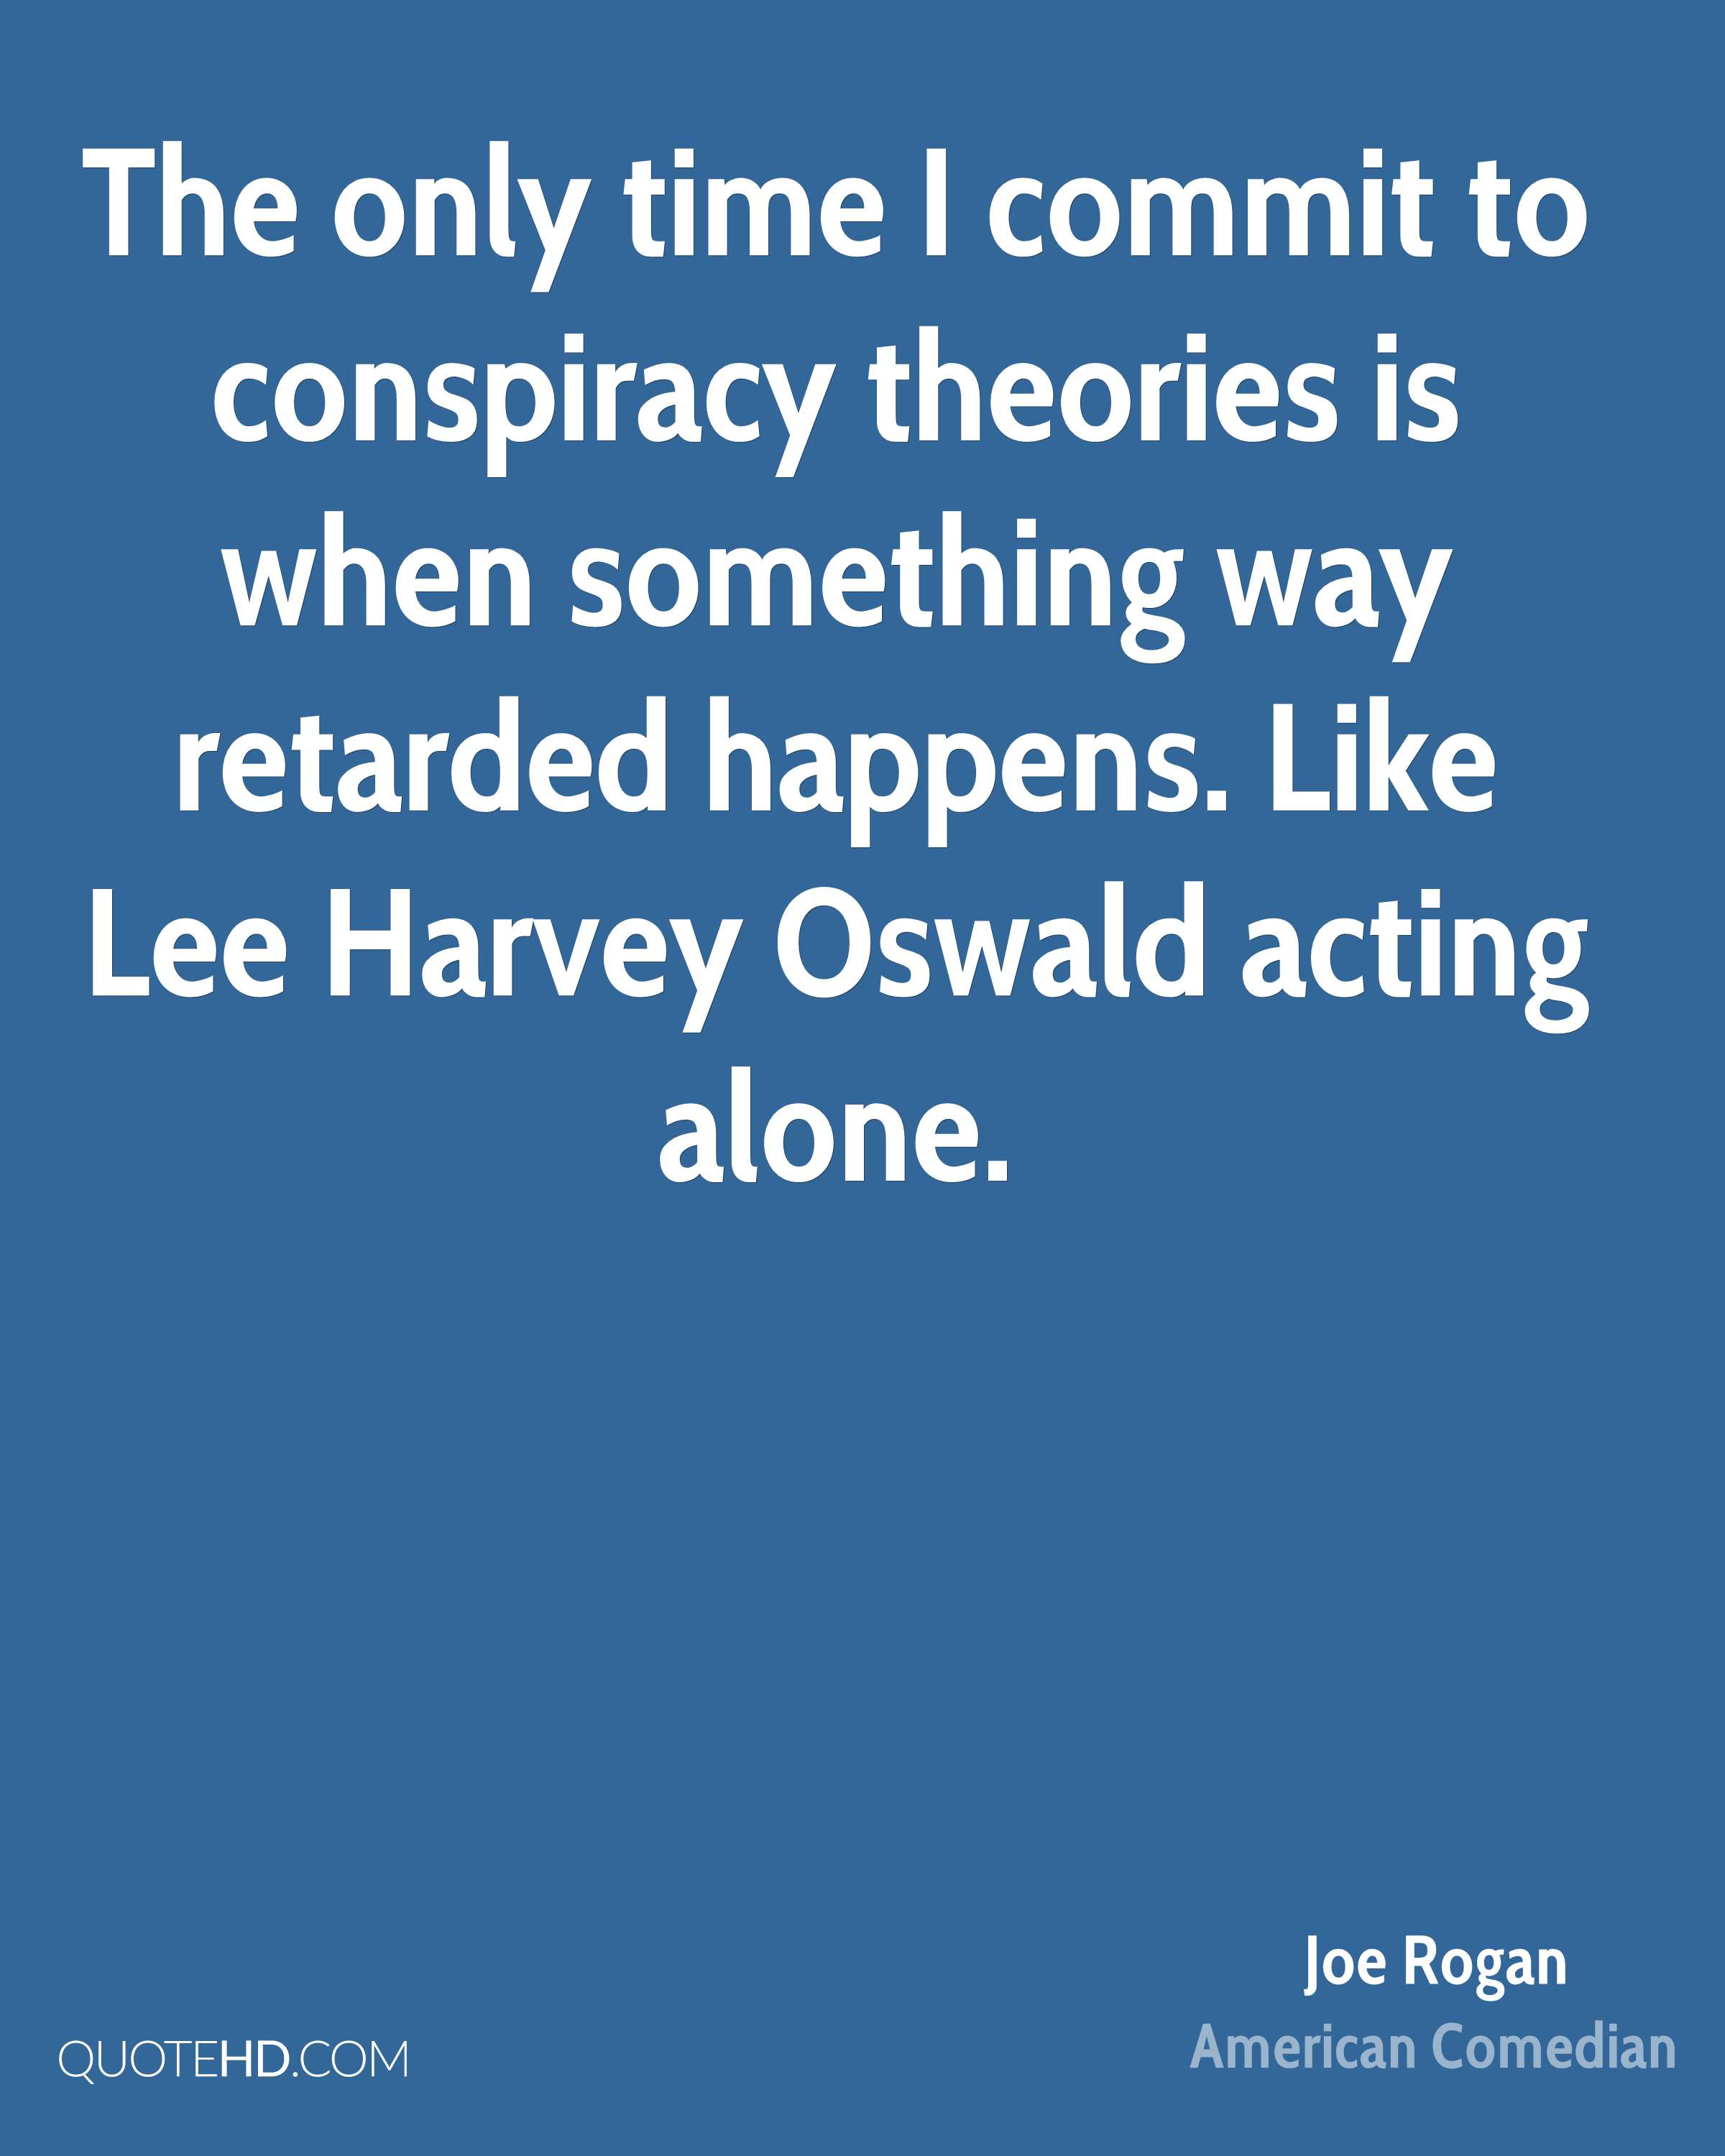 The only time I commit to conspiracy theories is when something way retarded happens. Like Lee Harvey Oswald acting alone.